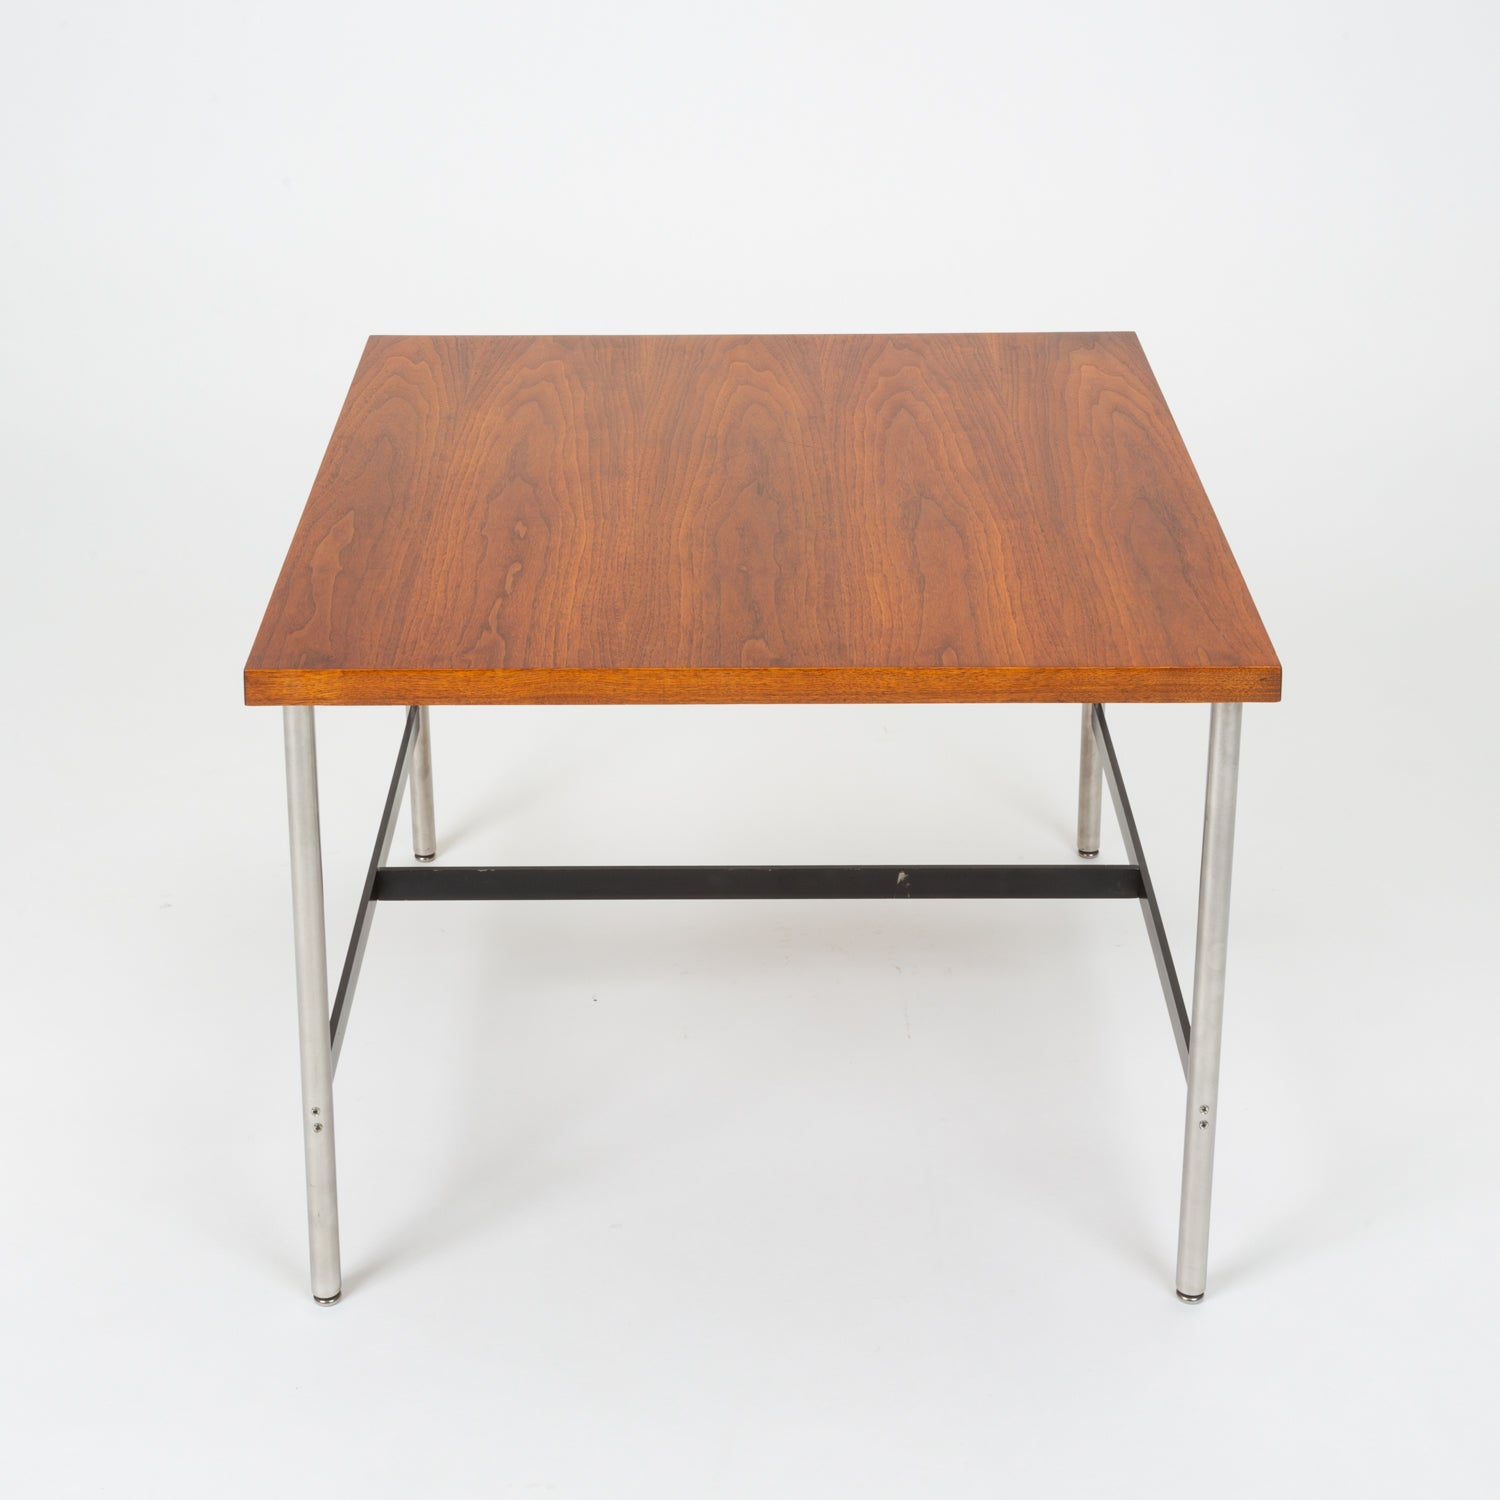 Herman Miller Square Side Table or Children's Work Table